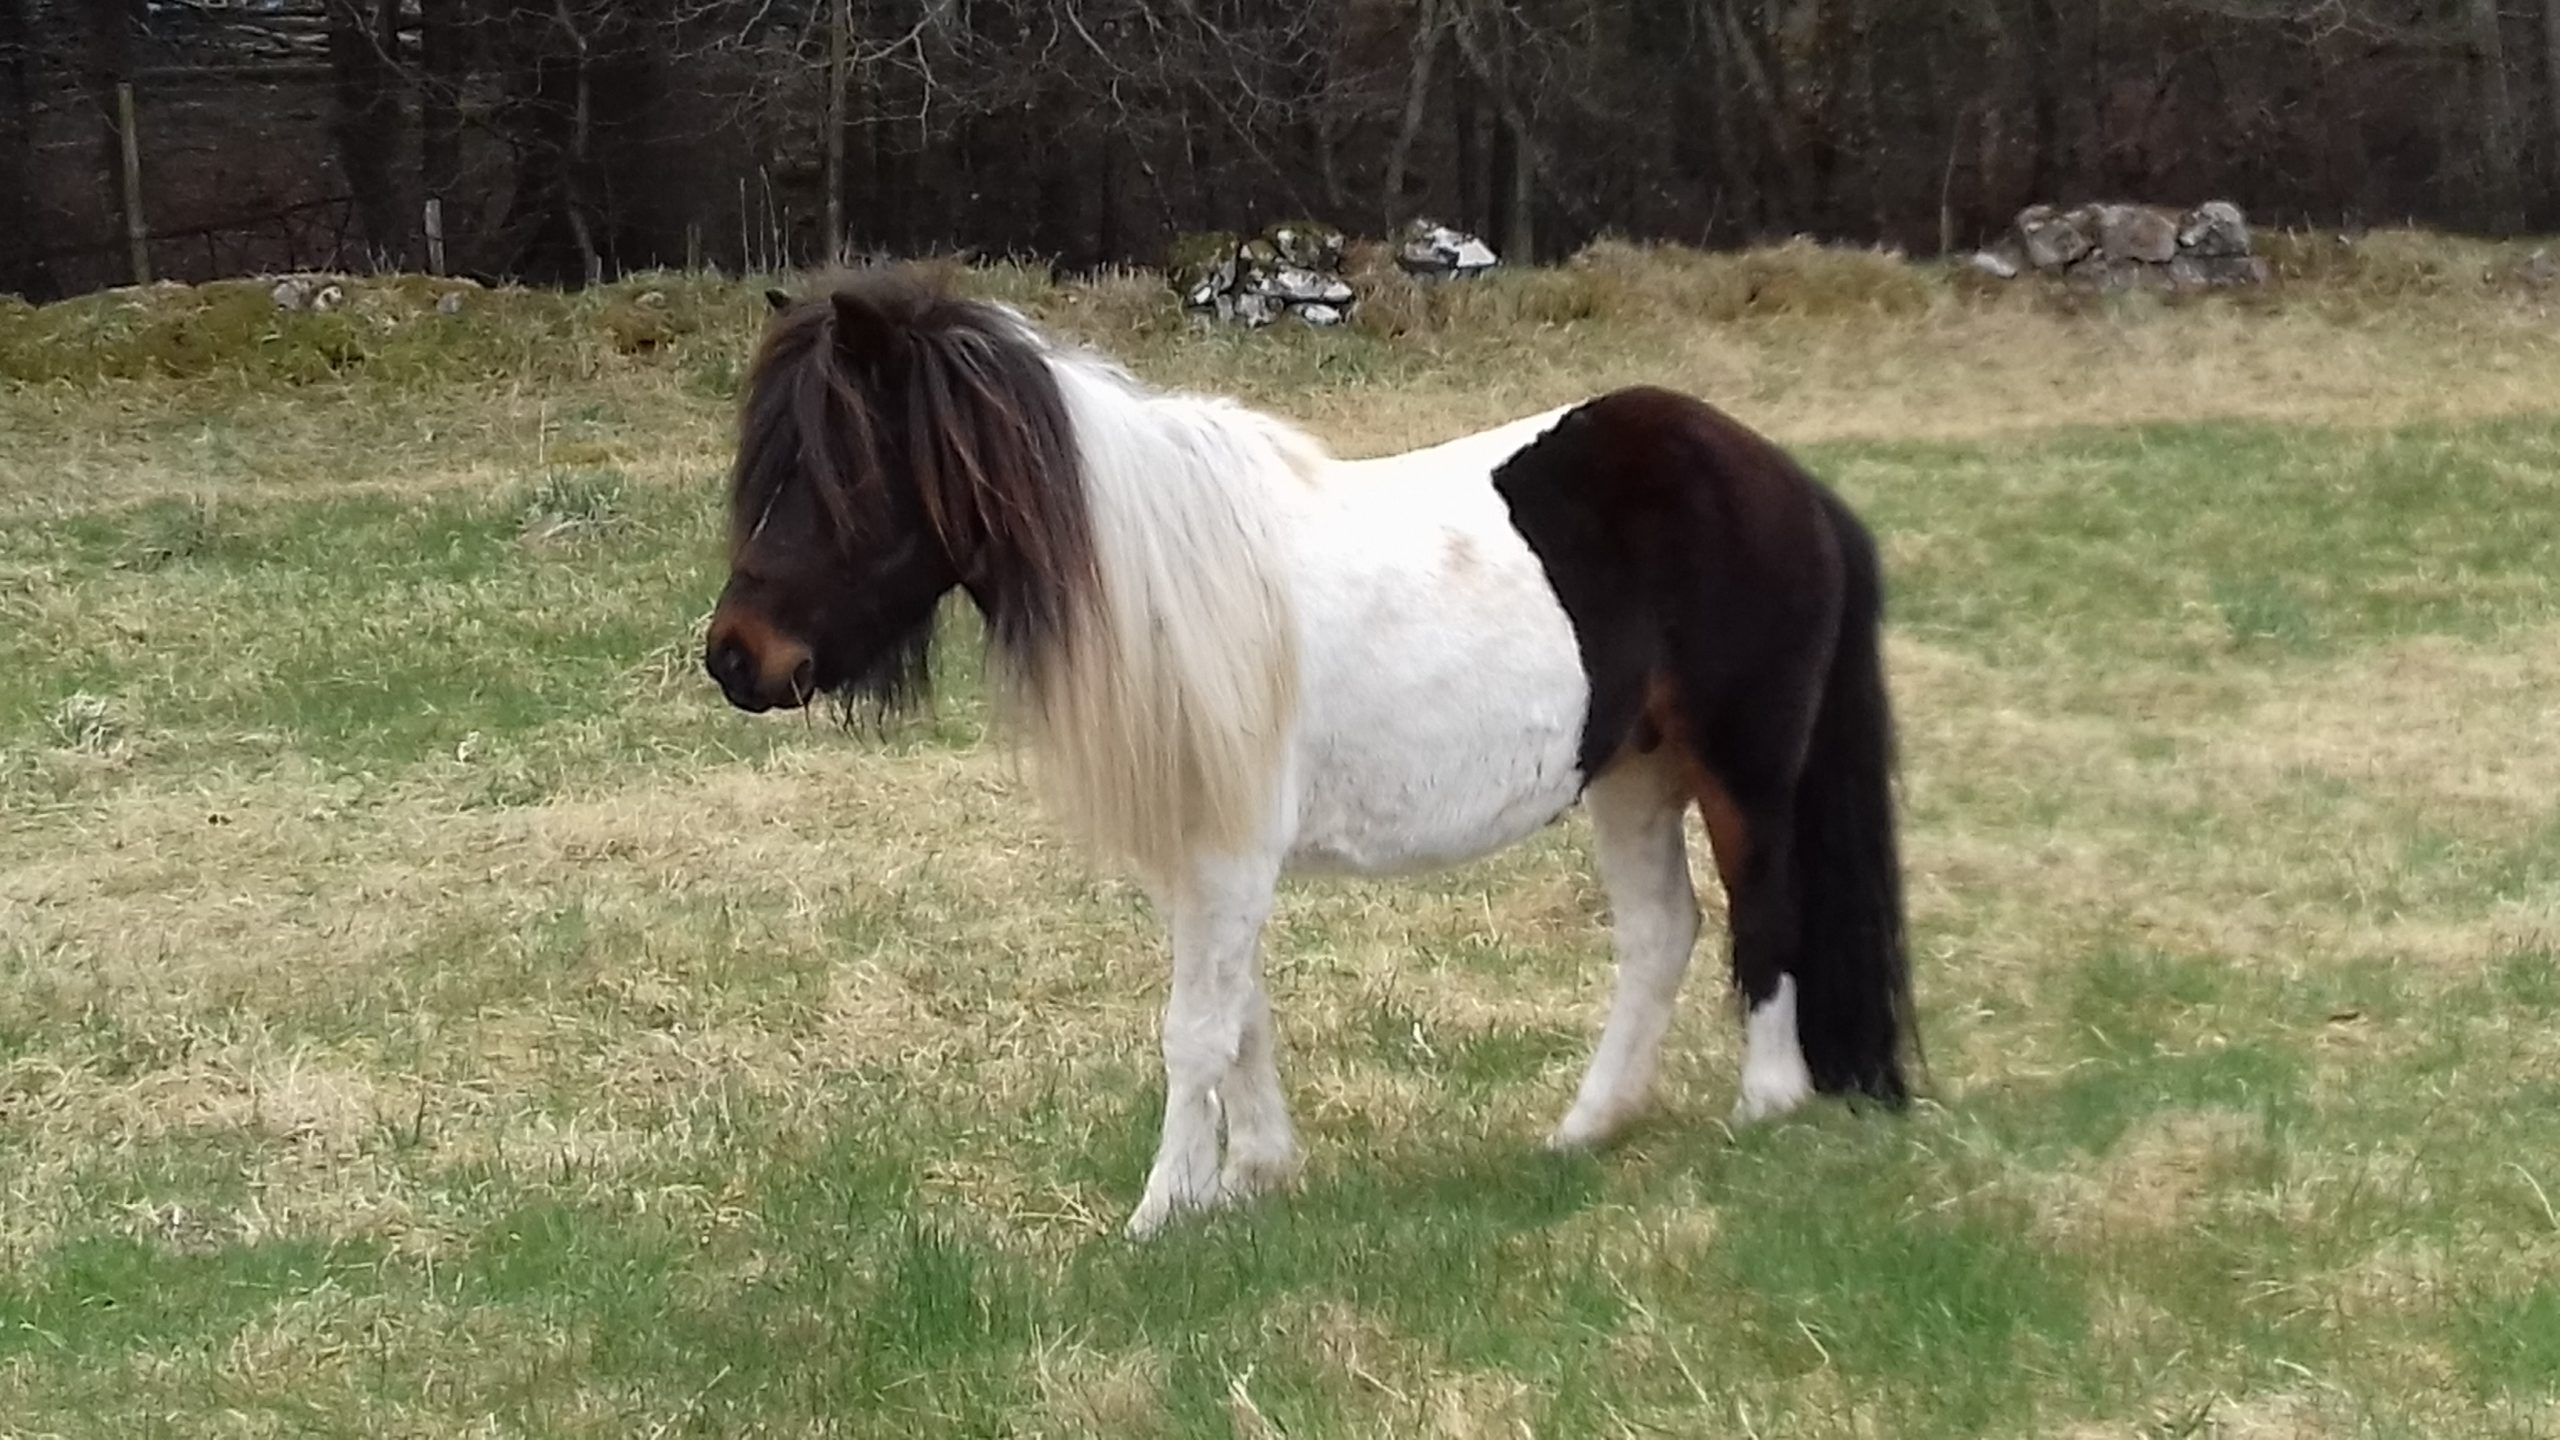 The stray pony found near Counteswells Woods